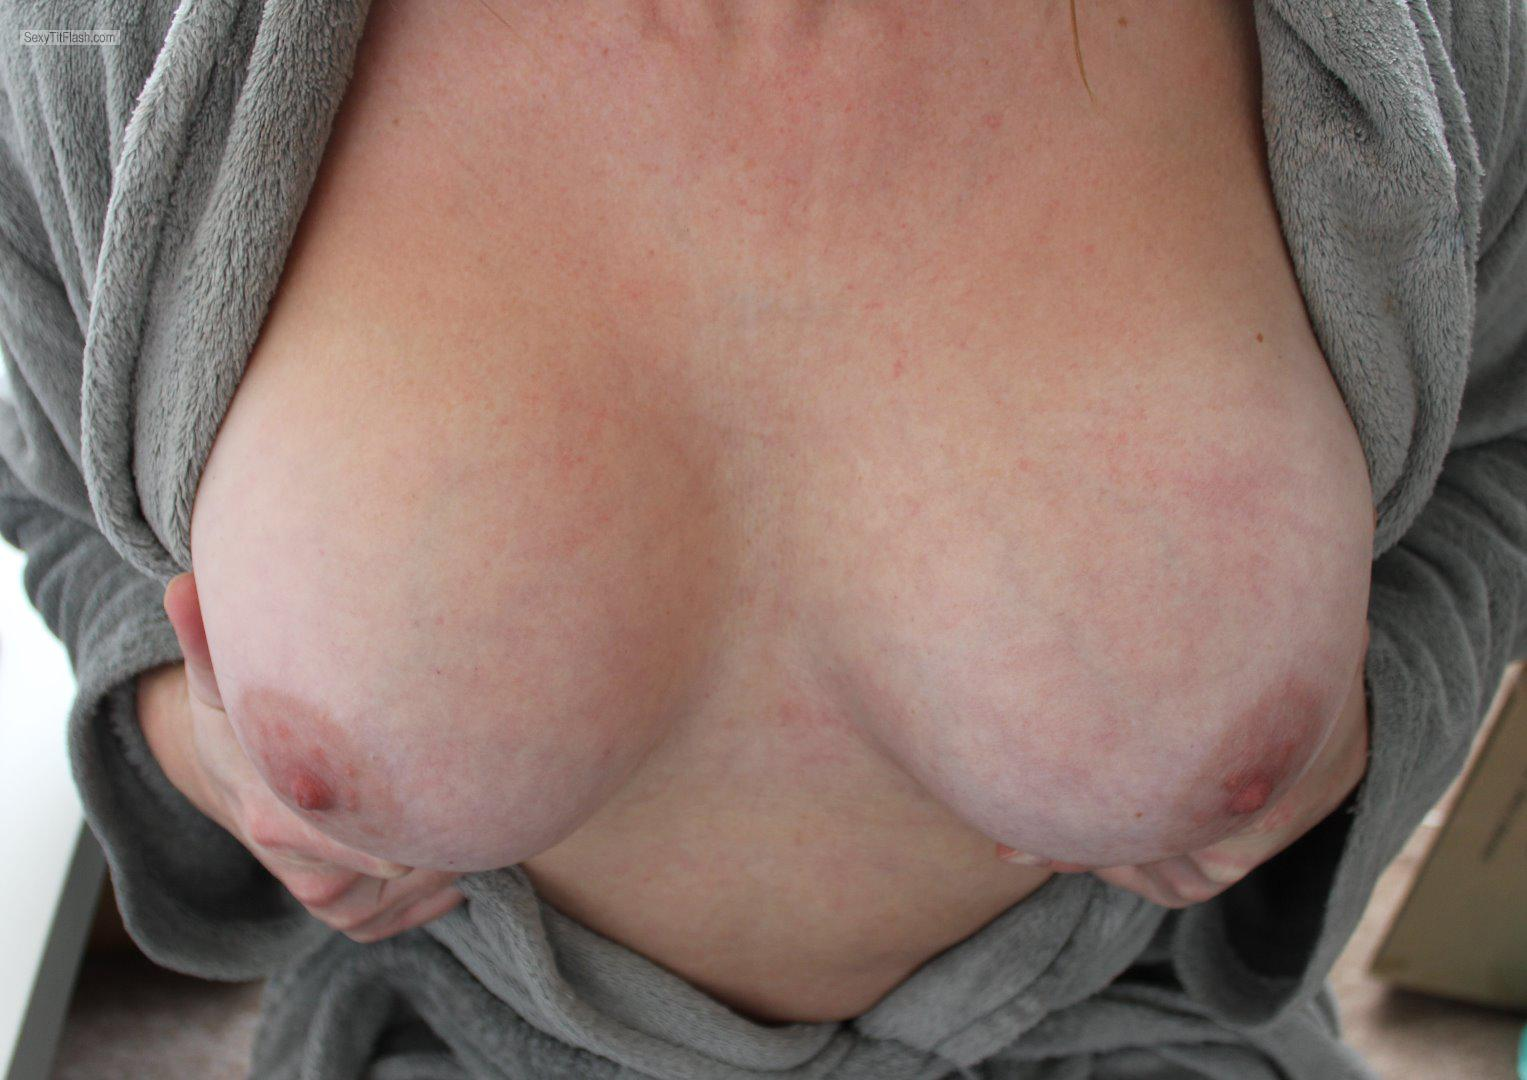 Tit Flash: My Medium Tits (Selfie) - Topless No Bra Day from United Kingdom